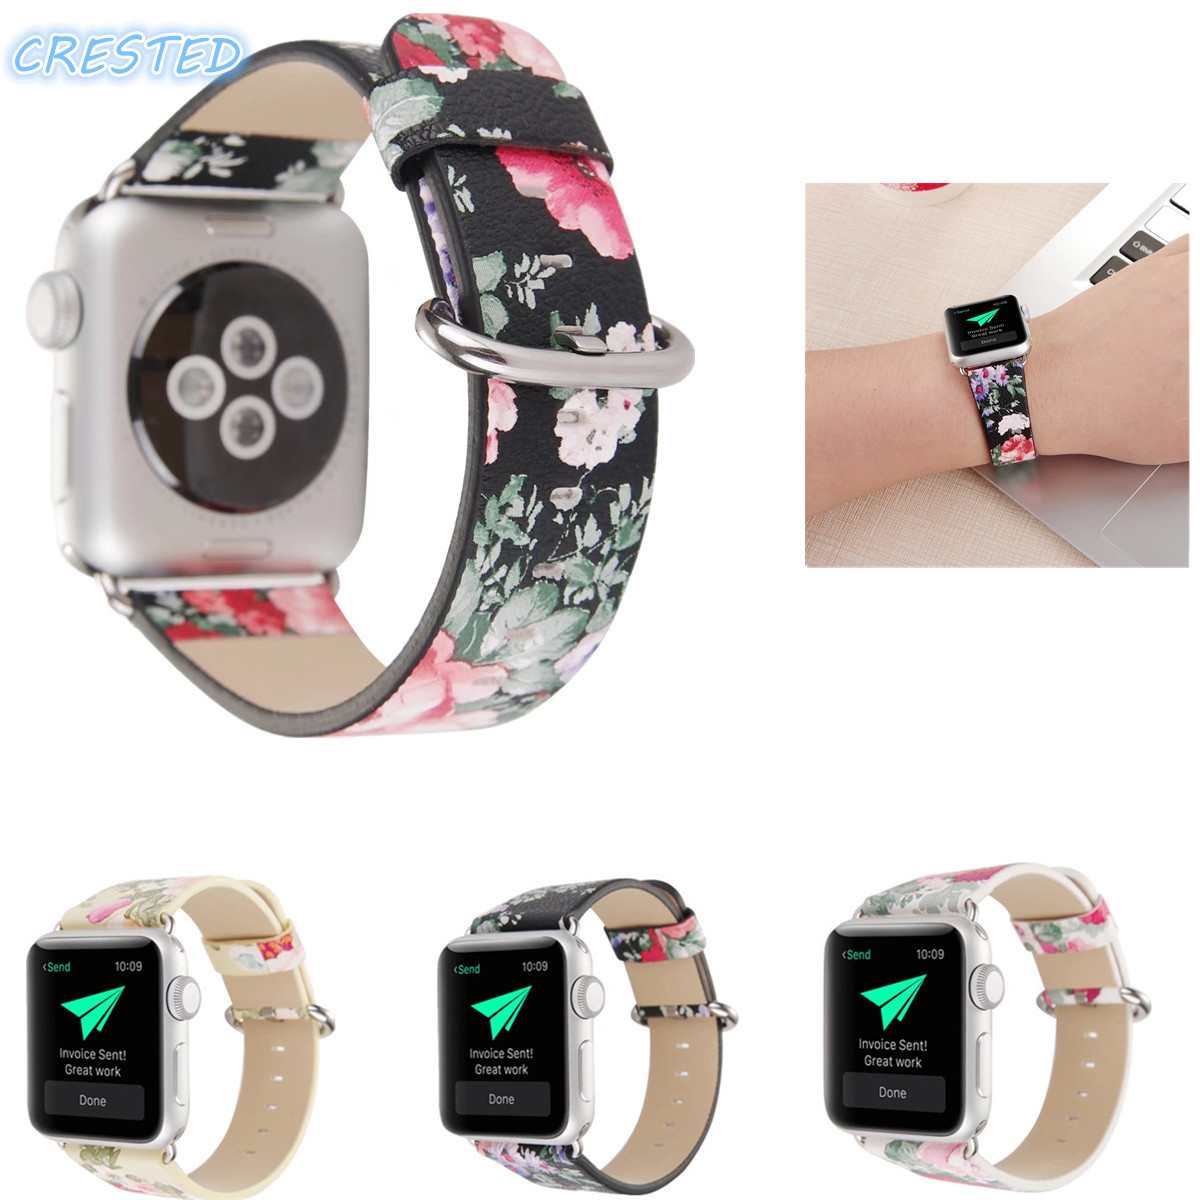 ERESTED Leather Watch Band for Apple Watch 42mm 38mm Wrist watchband Flower Design Bracelet strap for iwatch 3/2/1 watch belt nylon watchband adapters for iwatch apple watch 38mm 42mm zulu band fabric strap wrist belt bracelet black blue brown green